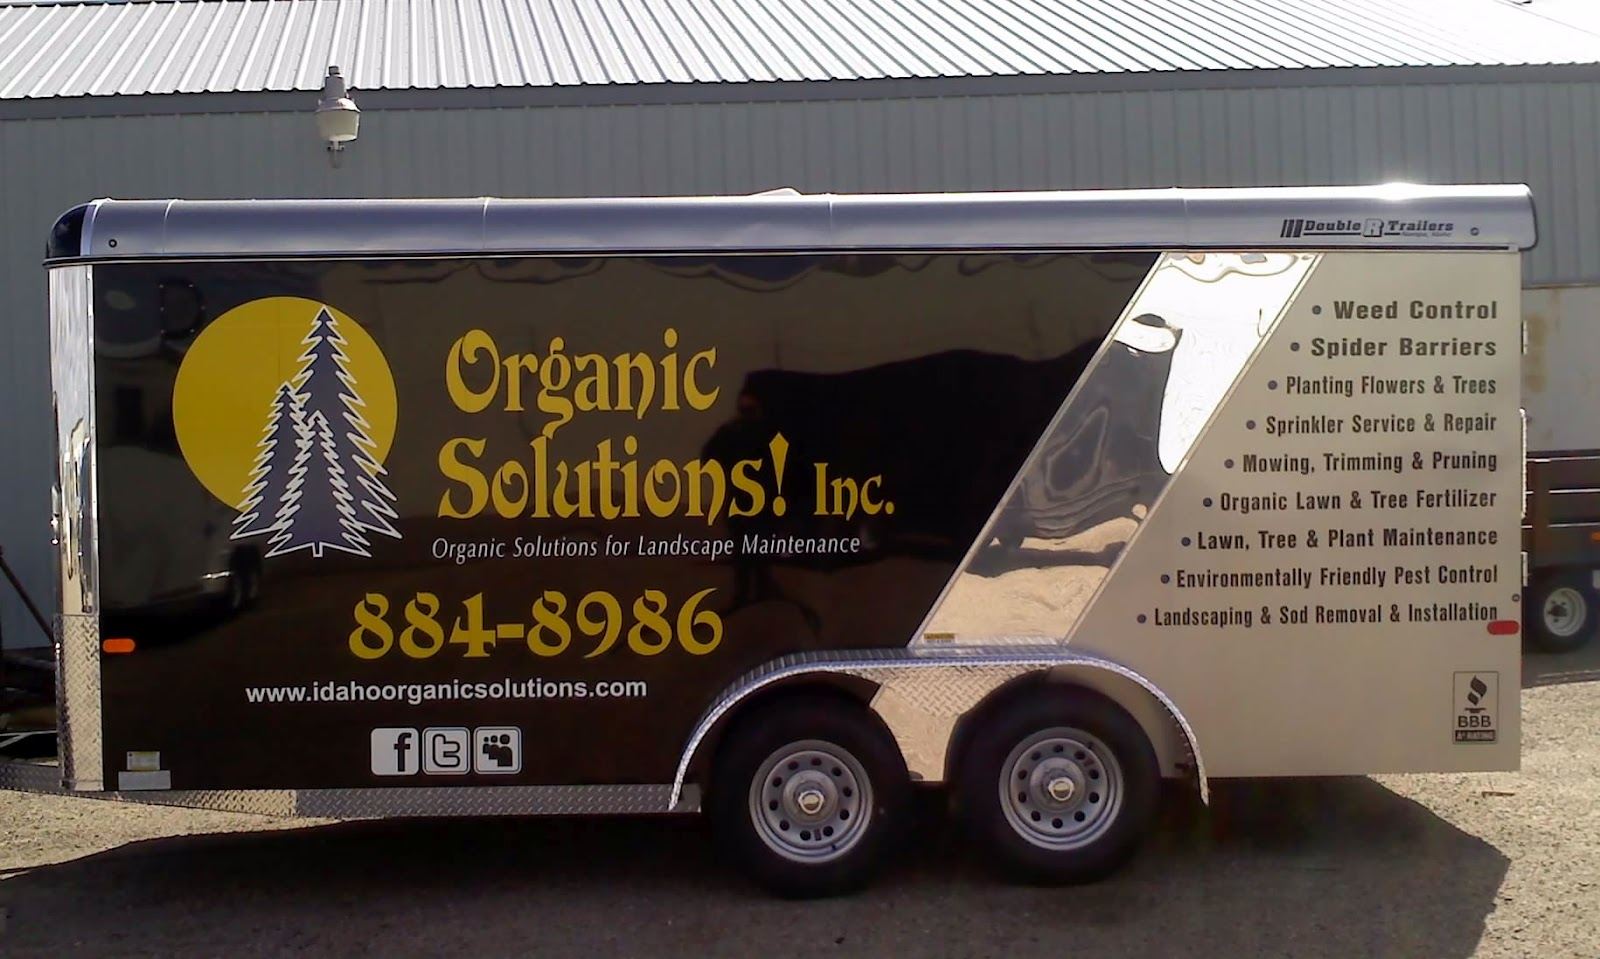 Organic Solutions Is A Landscaping Lawn Care Lawn Mowing Organic Lawn Fertilizer Tree Service And Sprinkler Company That Serves Boise Meridian Eagle Nampa And The Treasure Valley Organic Solutions Inc